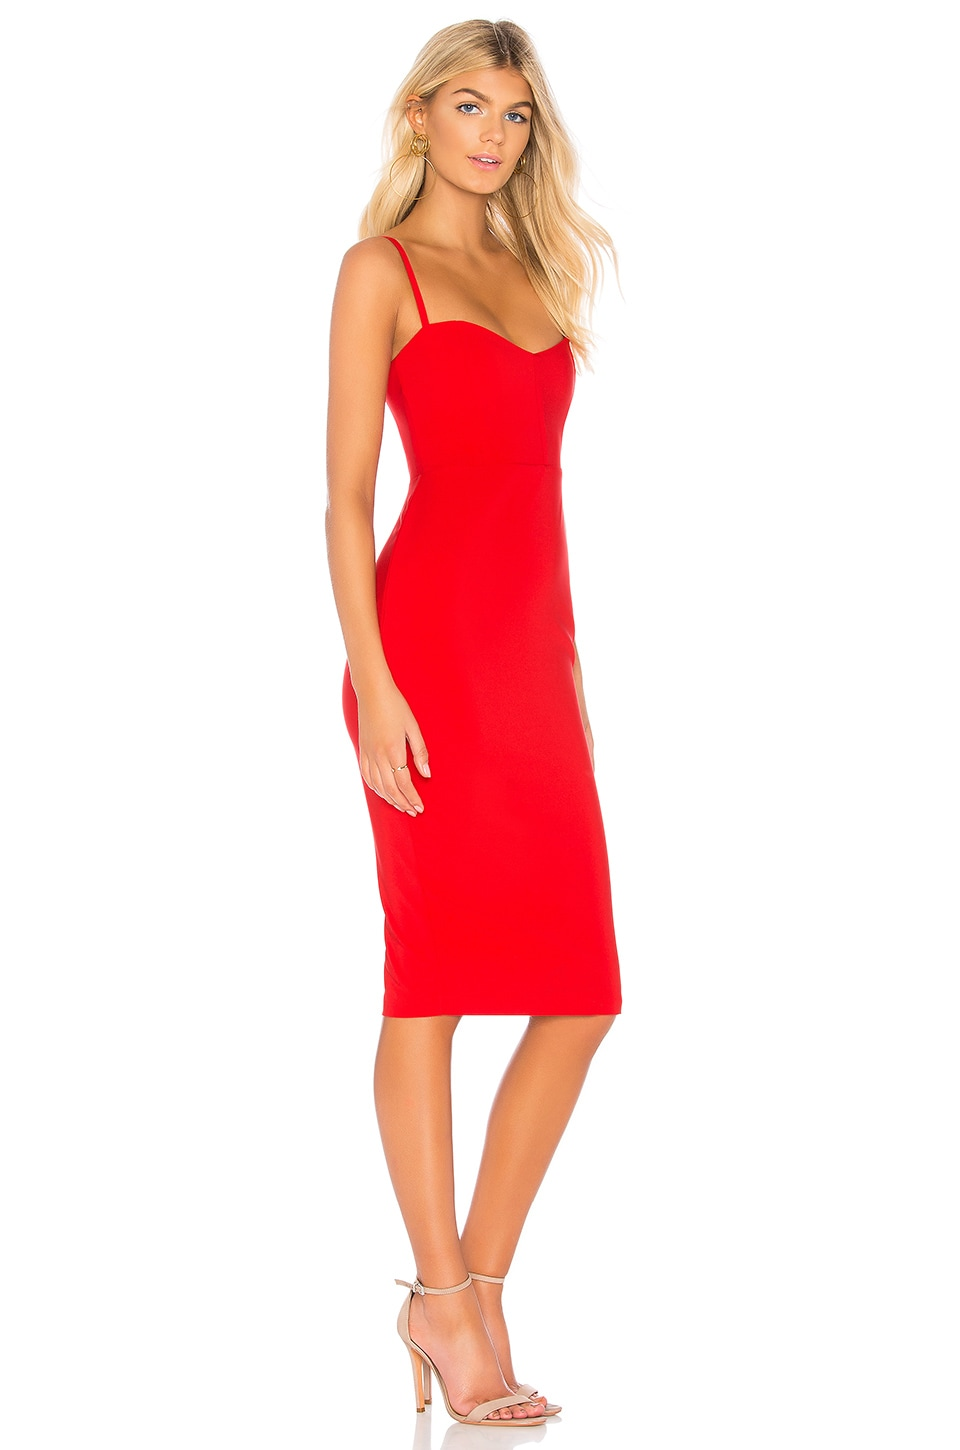 Allure Midi Dress, view 2, click to view large image.